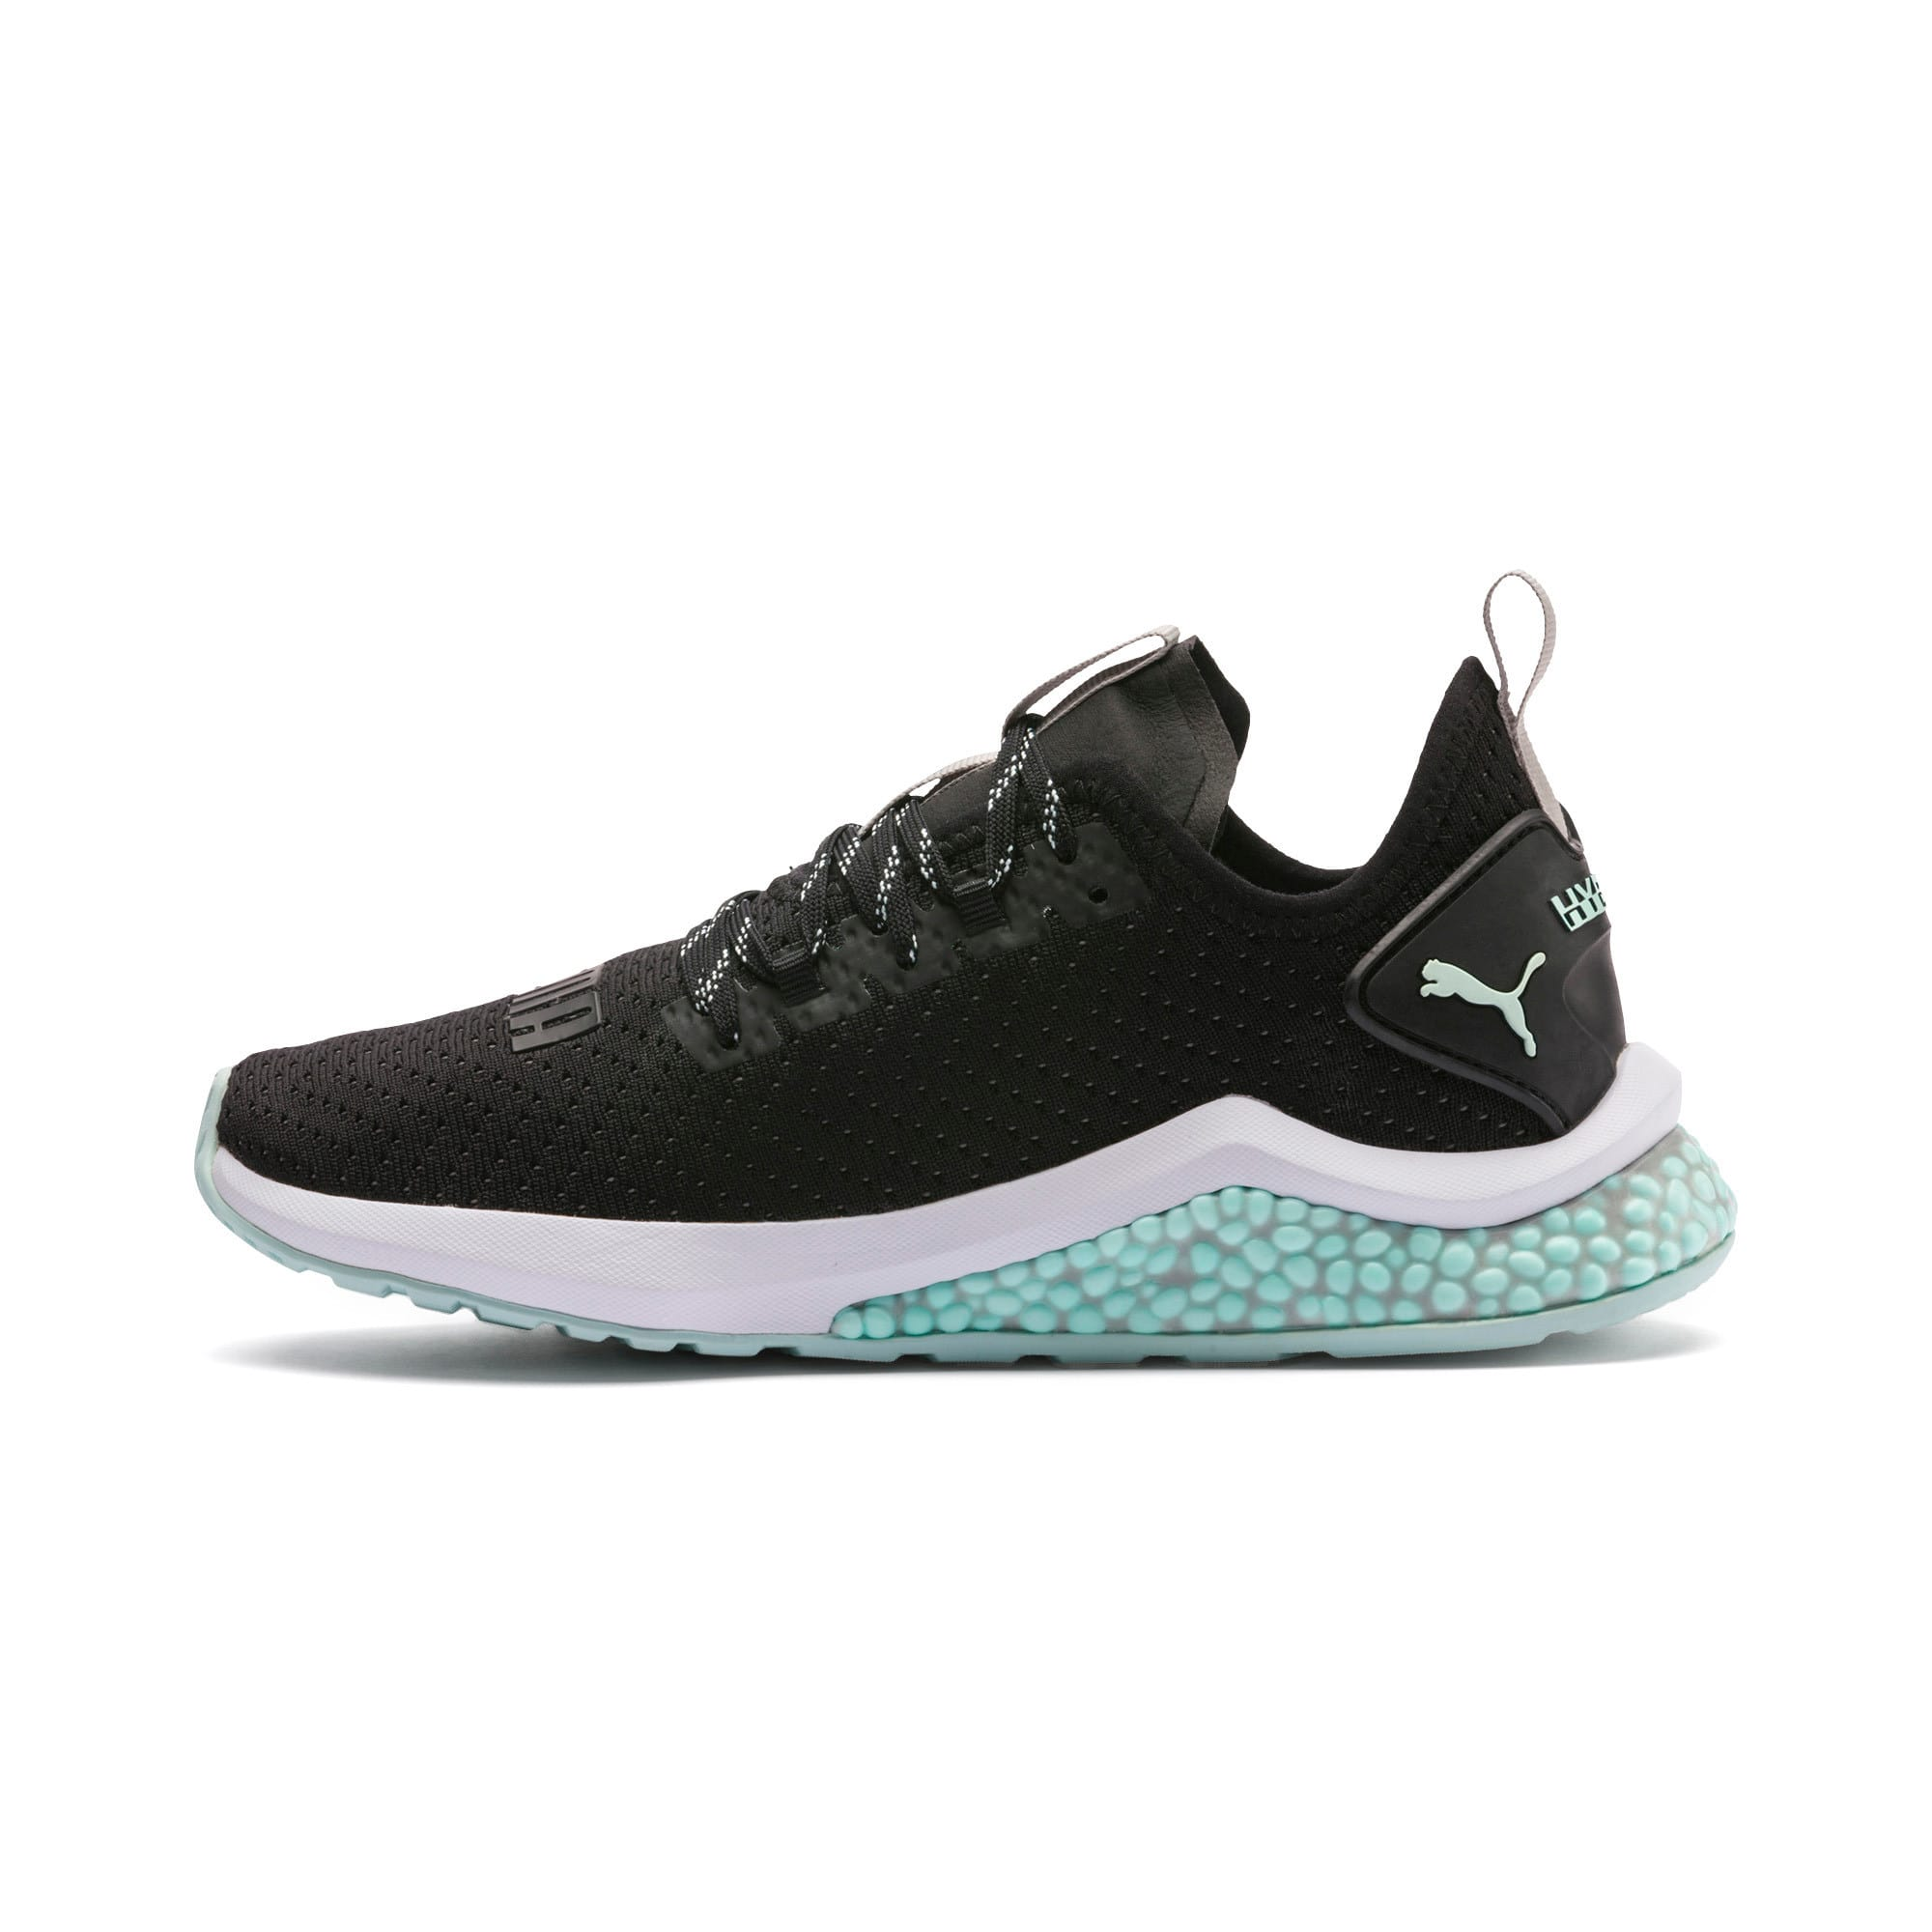 Thumbnail 1 of HYBRID NX Trailblazer Women's Running Shoes, Black-Fair Aqua-Pale Pink, medium